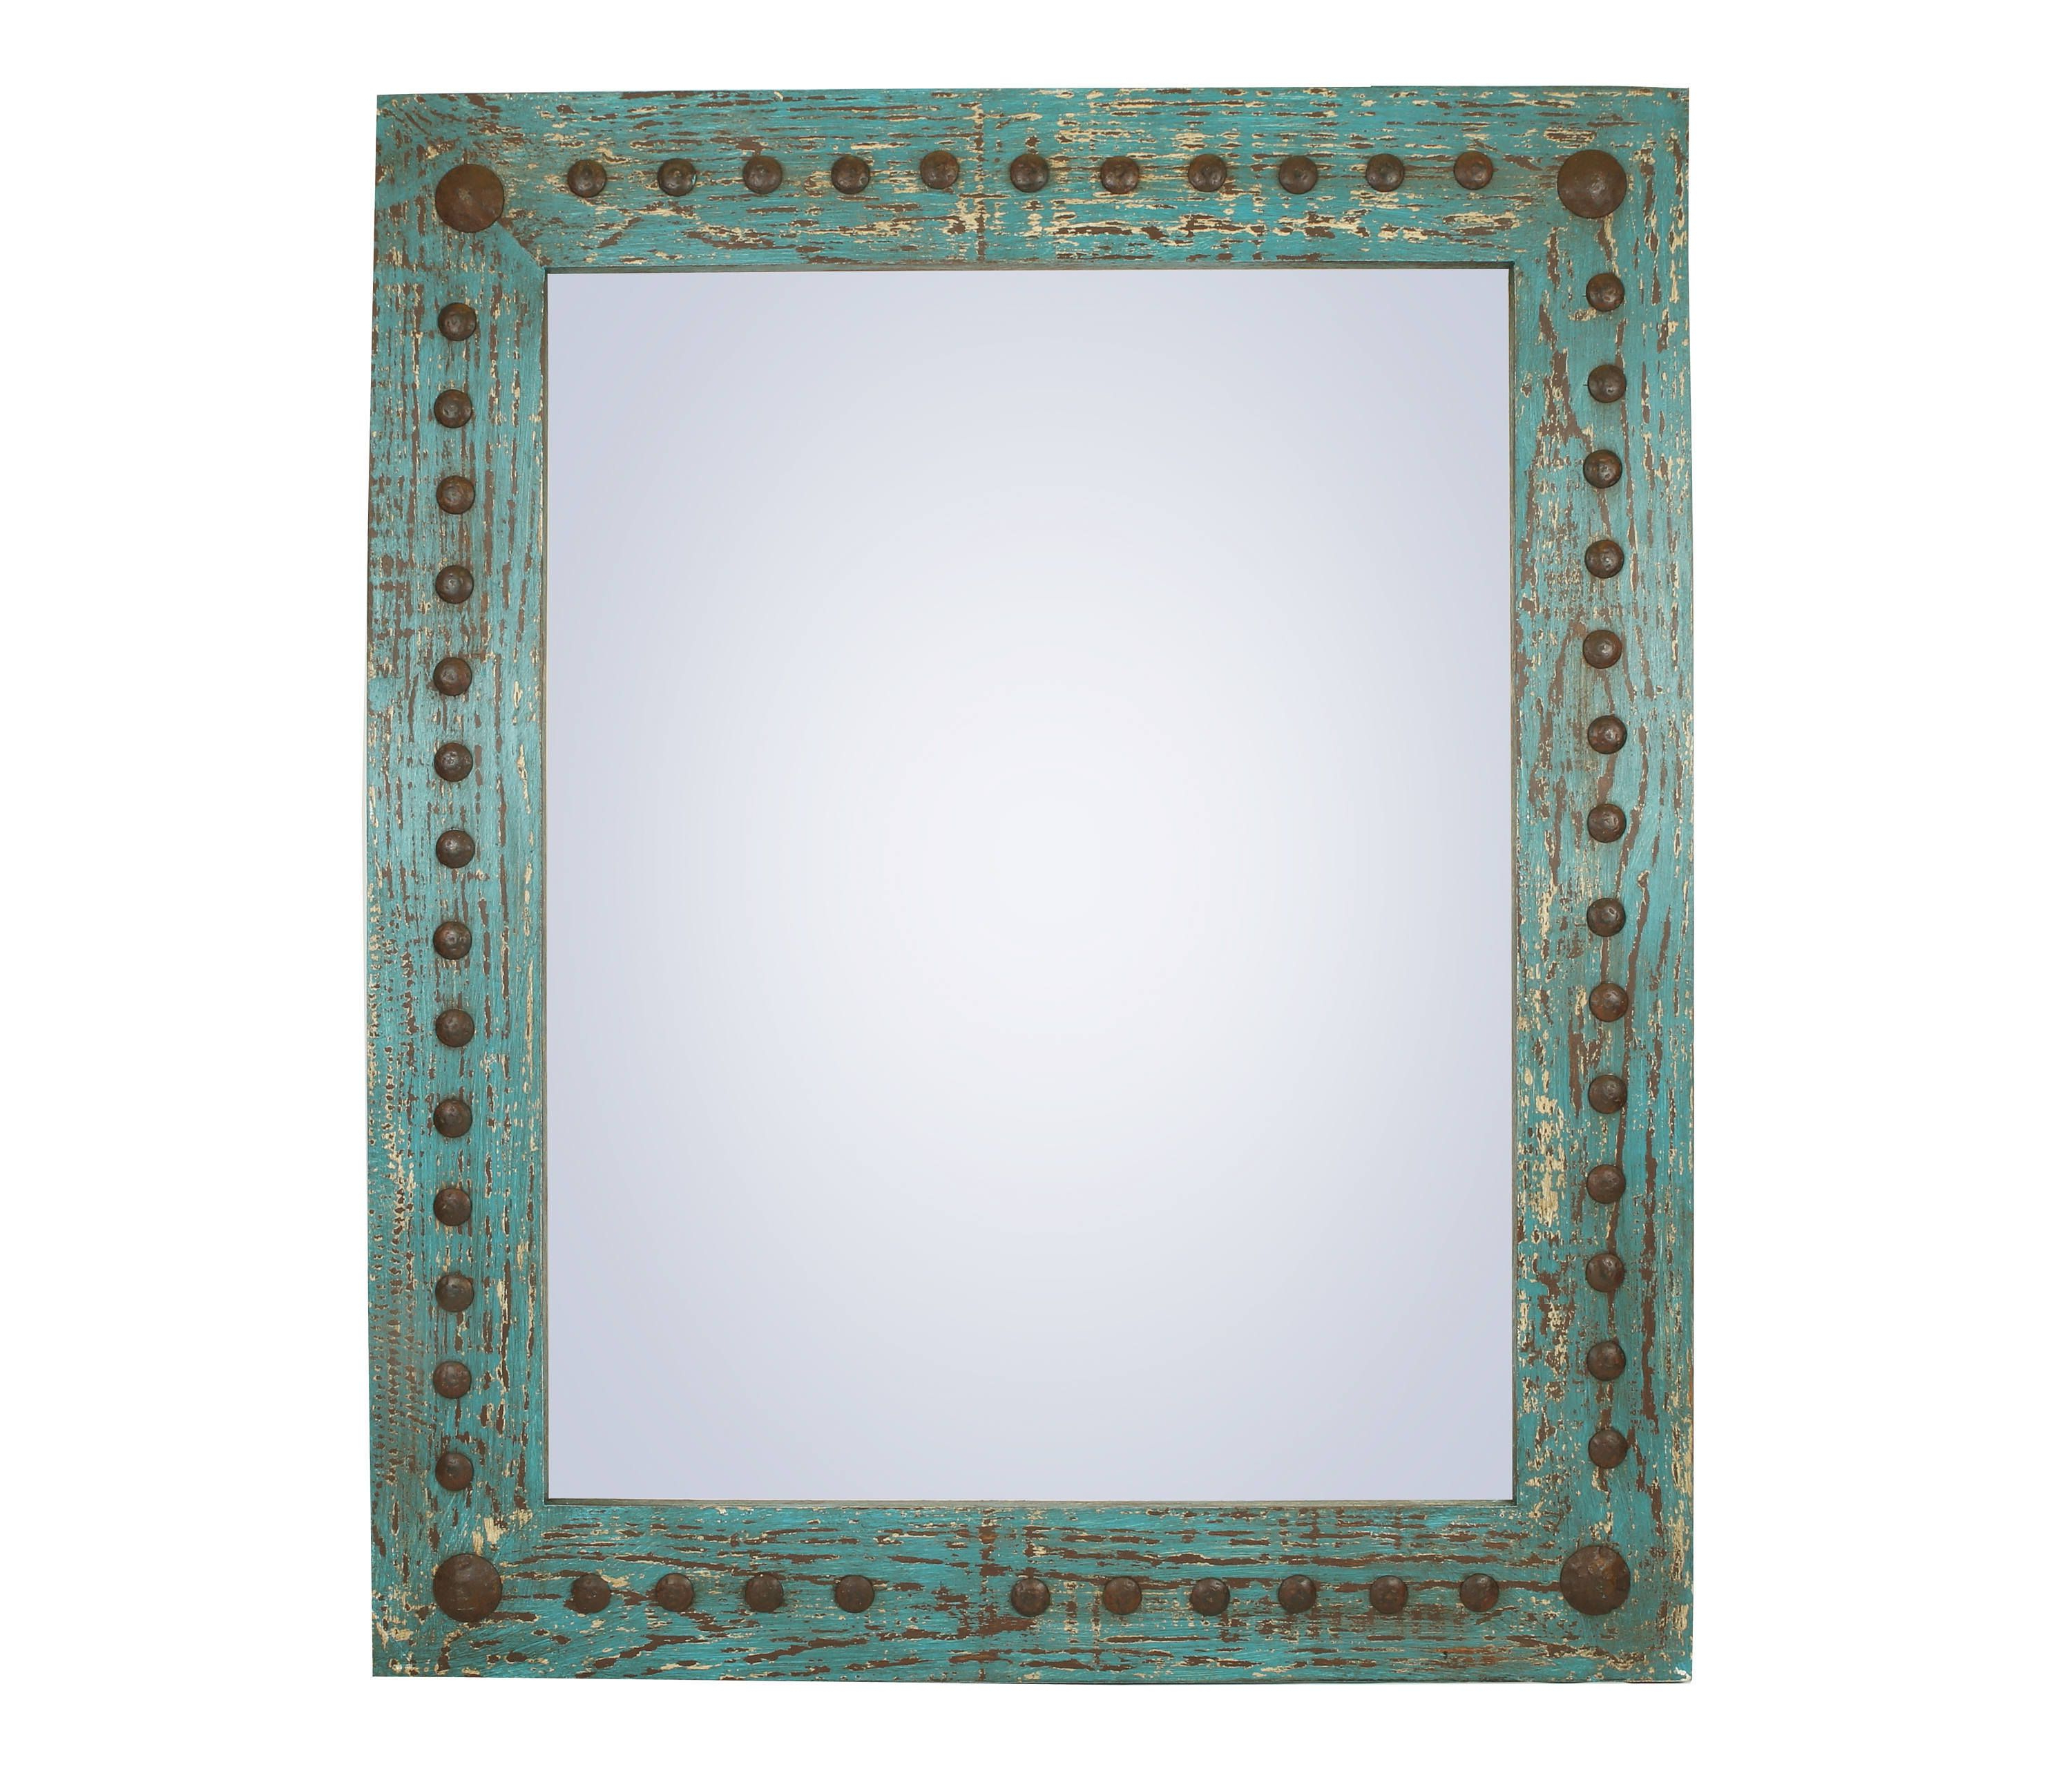 Mexican Wall Mirrors Inside Popular Puebla Rustic Mirror Wood Mexican 34X34 Rustic Distressed (Gallery 6 of 20)